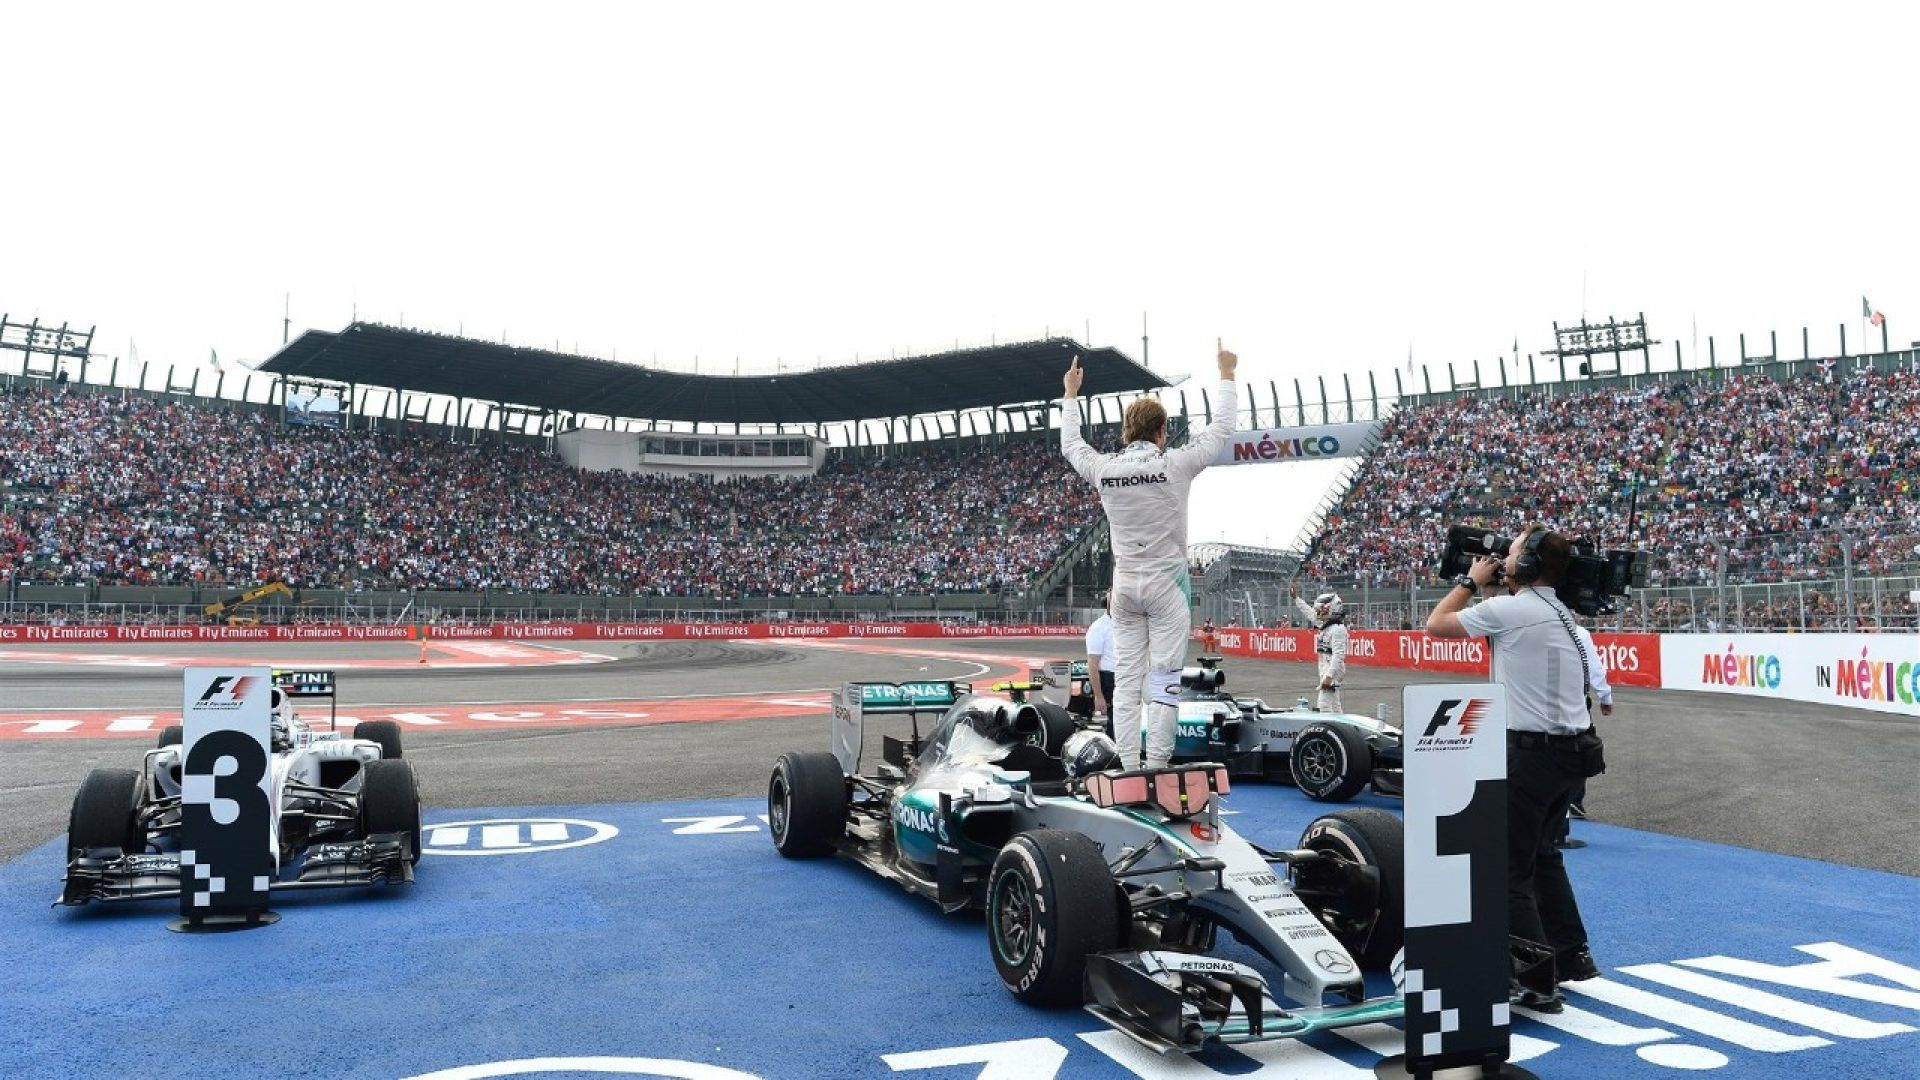 Nico Rosberg after winning the Mexico Grand Prix